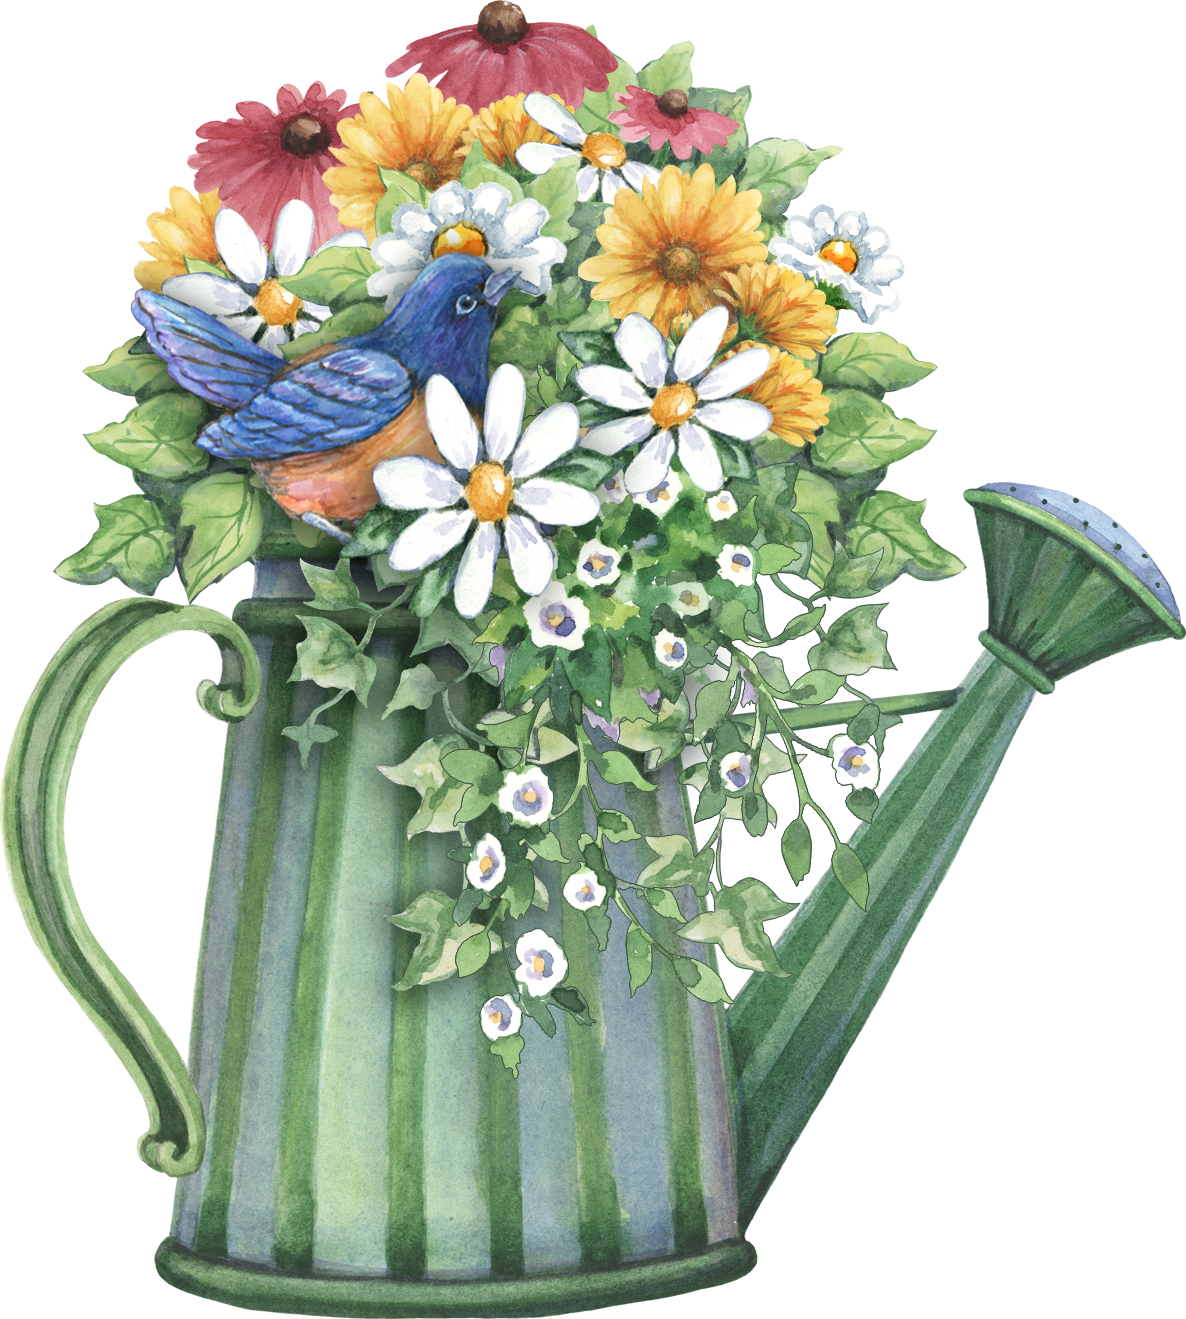 Watering can full of. Gardening clipart flower cart